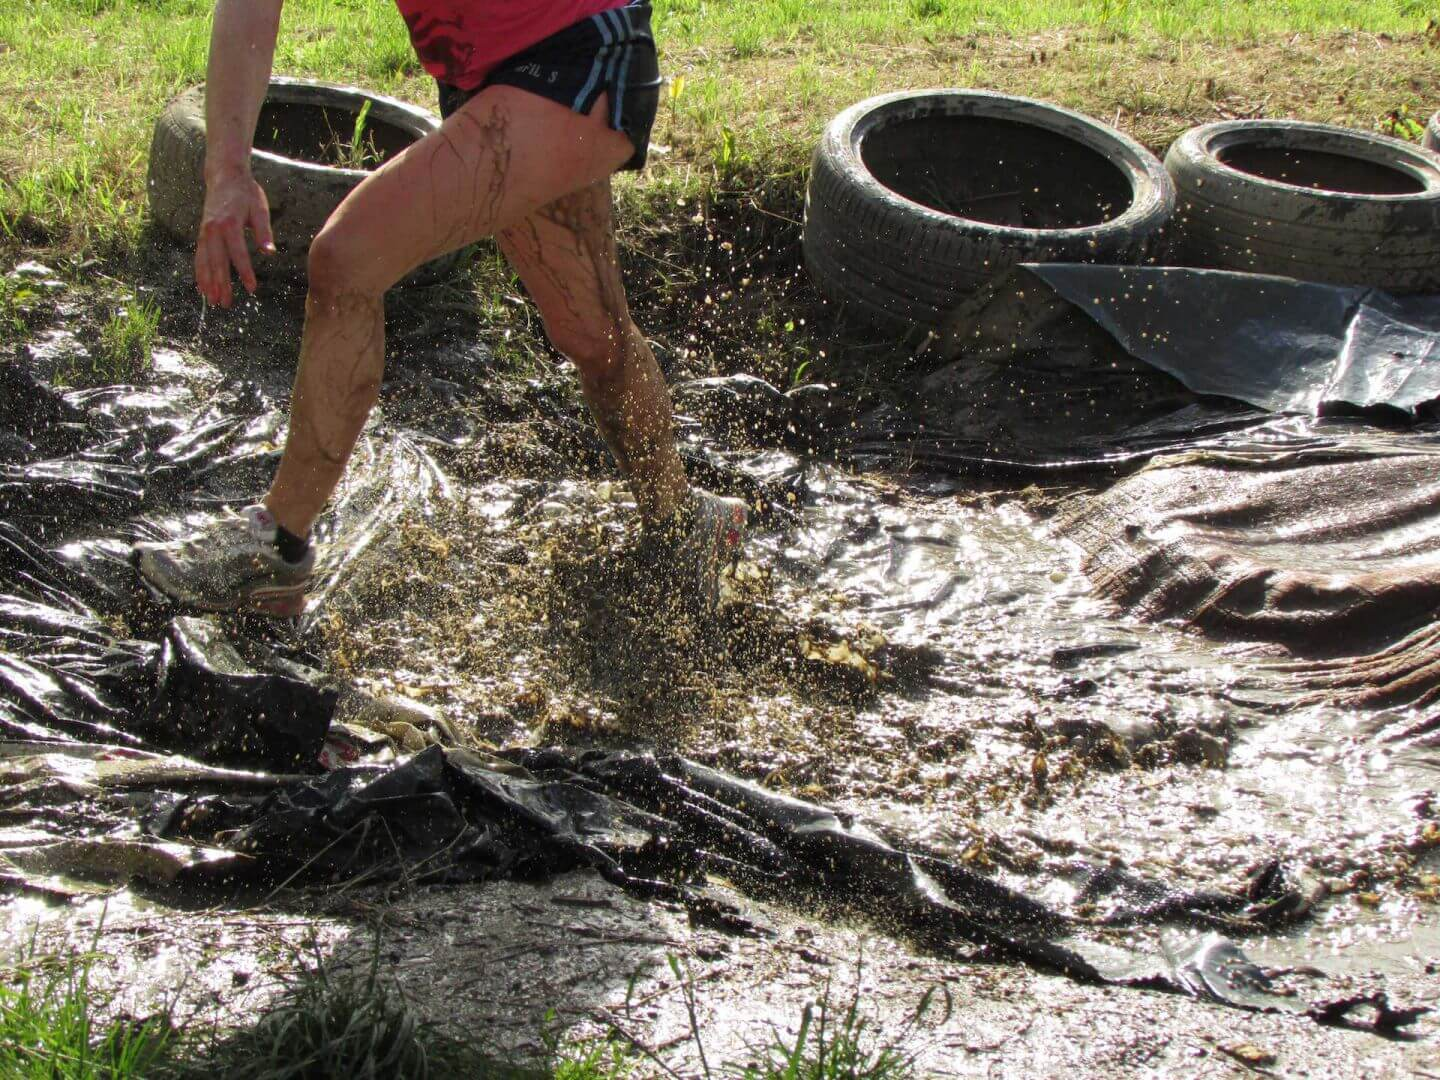 A person walking through muddy water on the assault course.